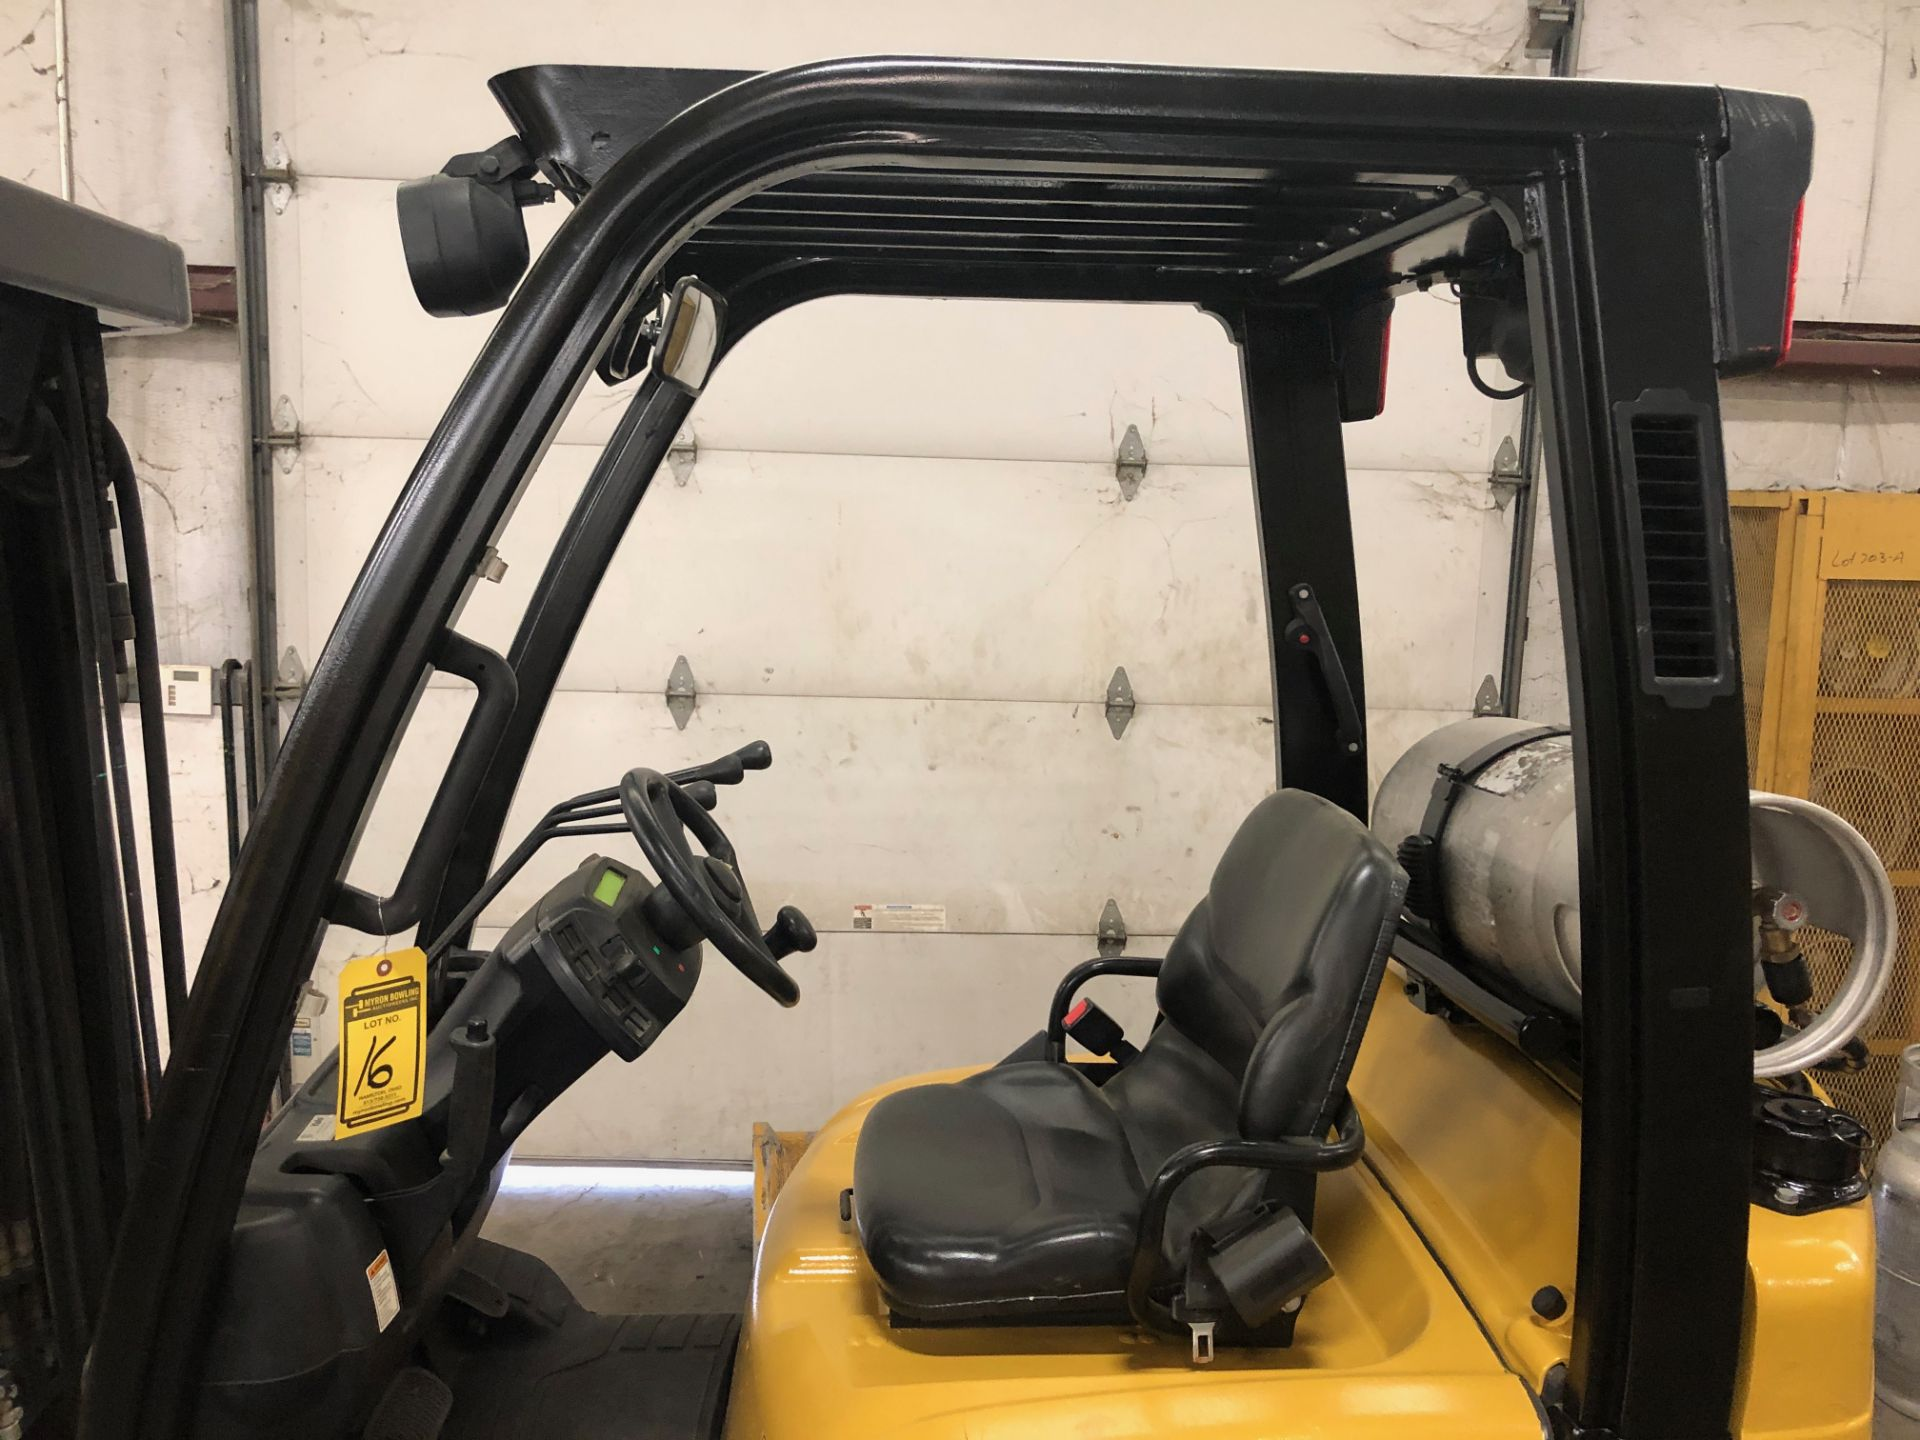 Lot 16 - 2014 YALE 5,000-LB. CAPACITY FORKLIFT, MODEL: GLC050VX, S/N: B910V01755M, LPG, LEVER SHIFT